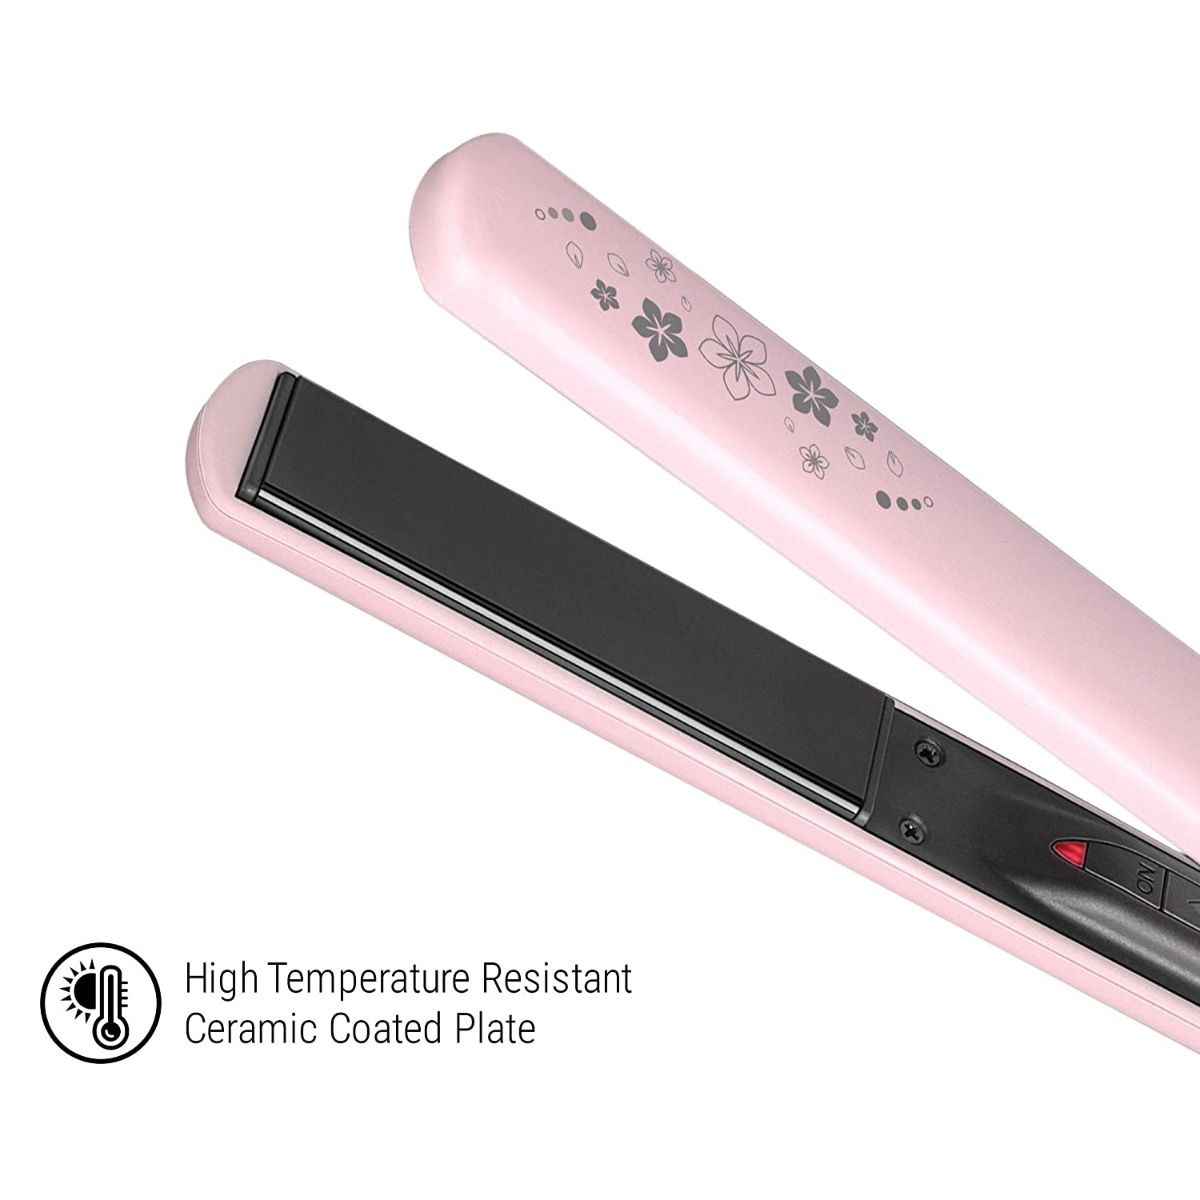 Syska HS6820 SuperGlam 32 W Hair Straightener